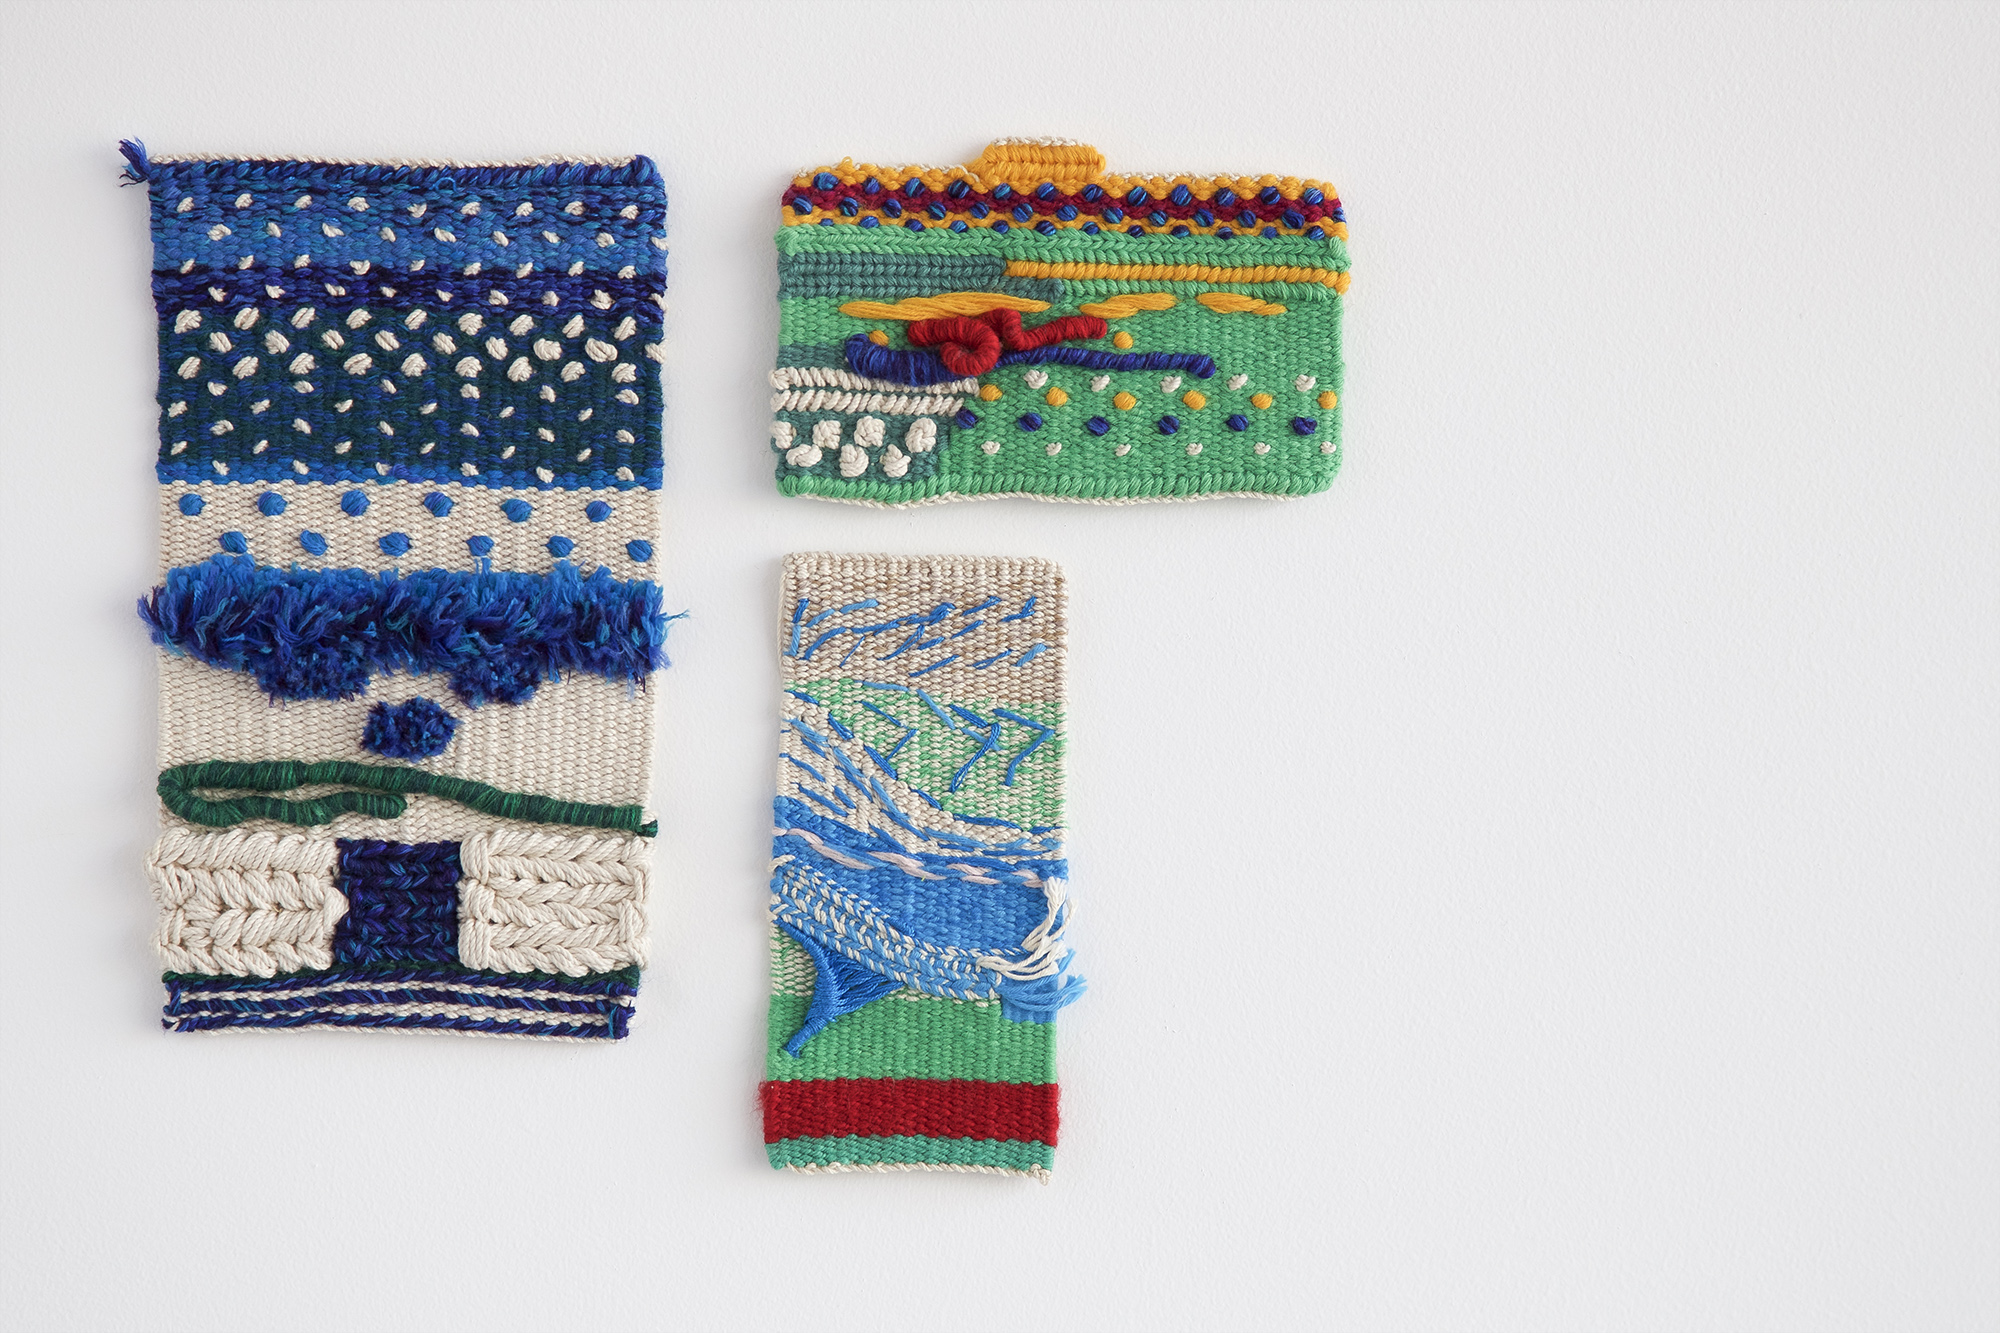 SHAPING AND TEXTURE FOR WOVEN TAPESTRY with SARA LINDSAY